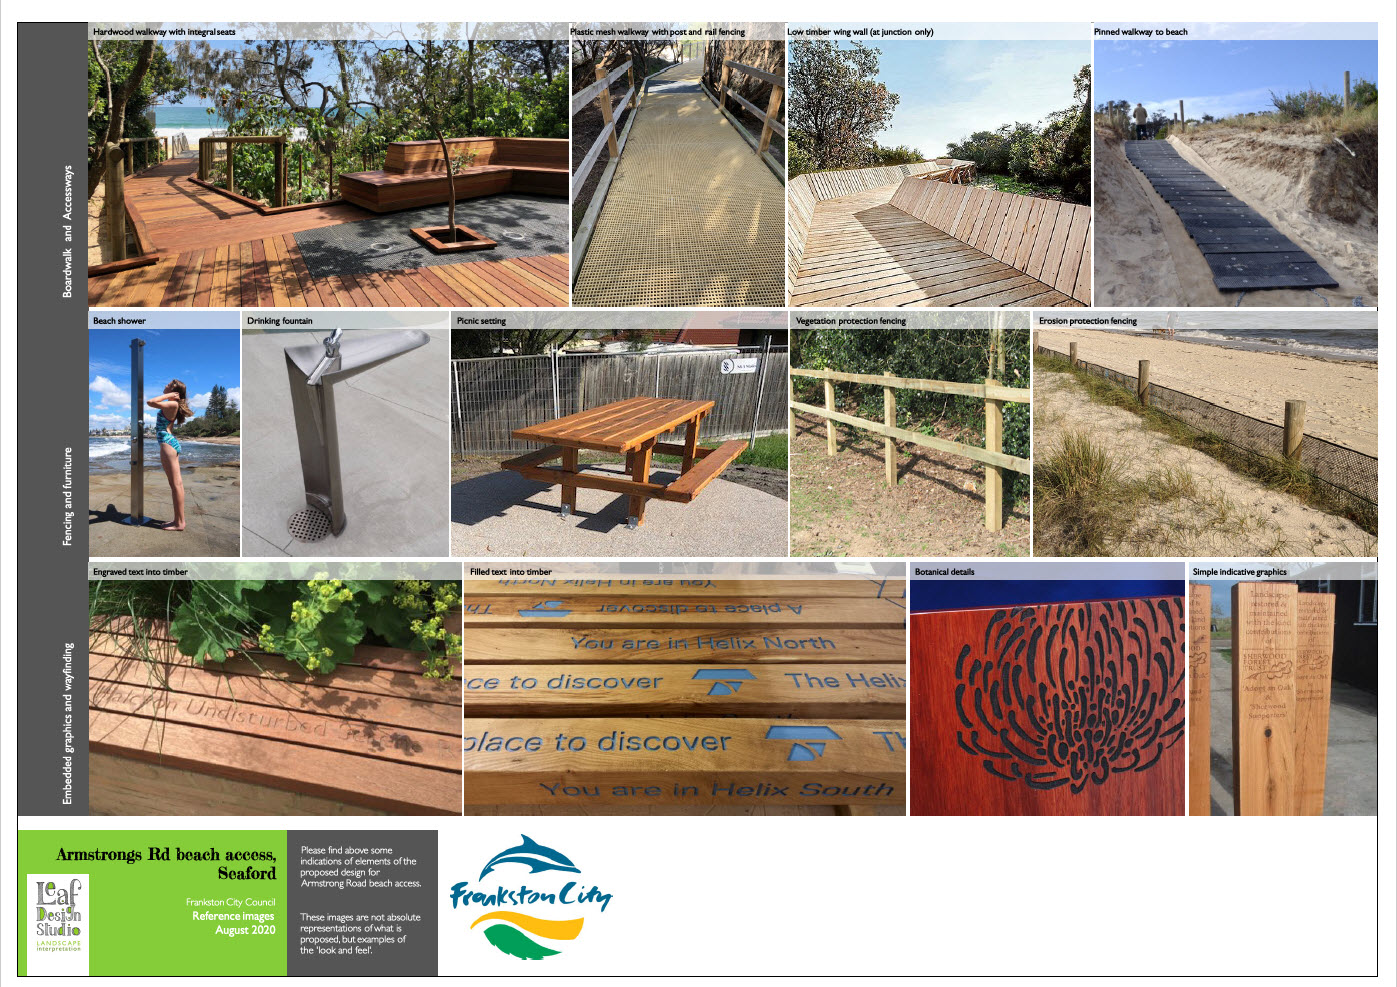 Seaford Foreshore Activation